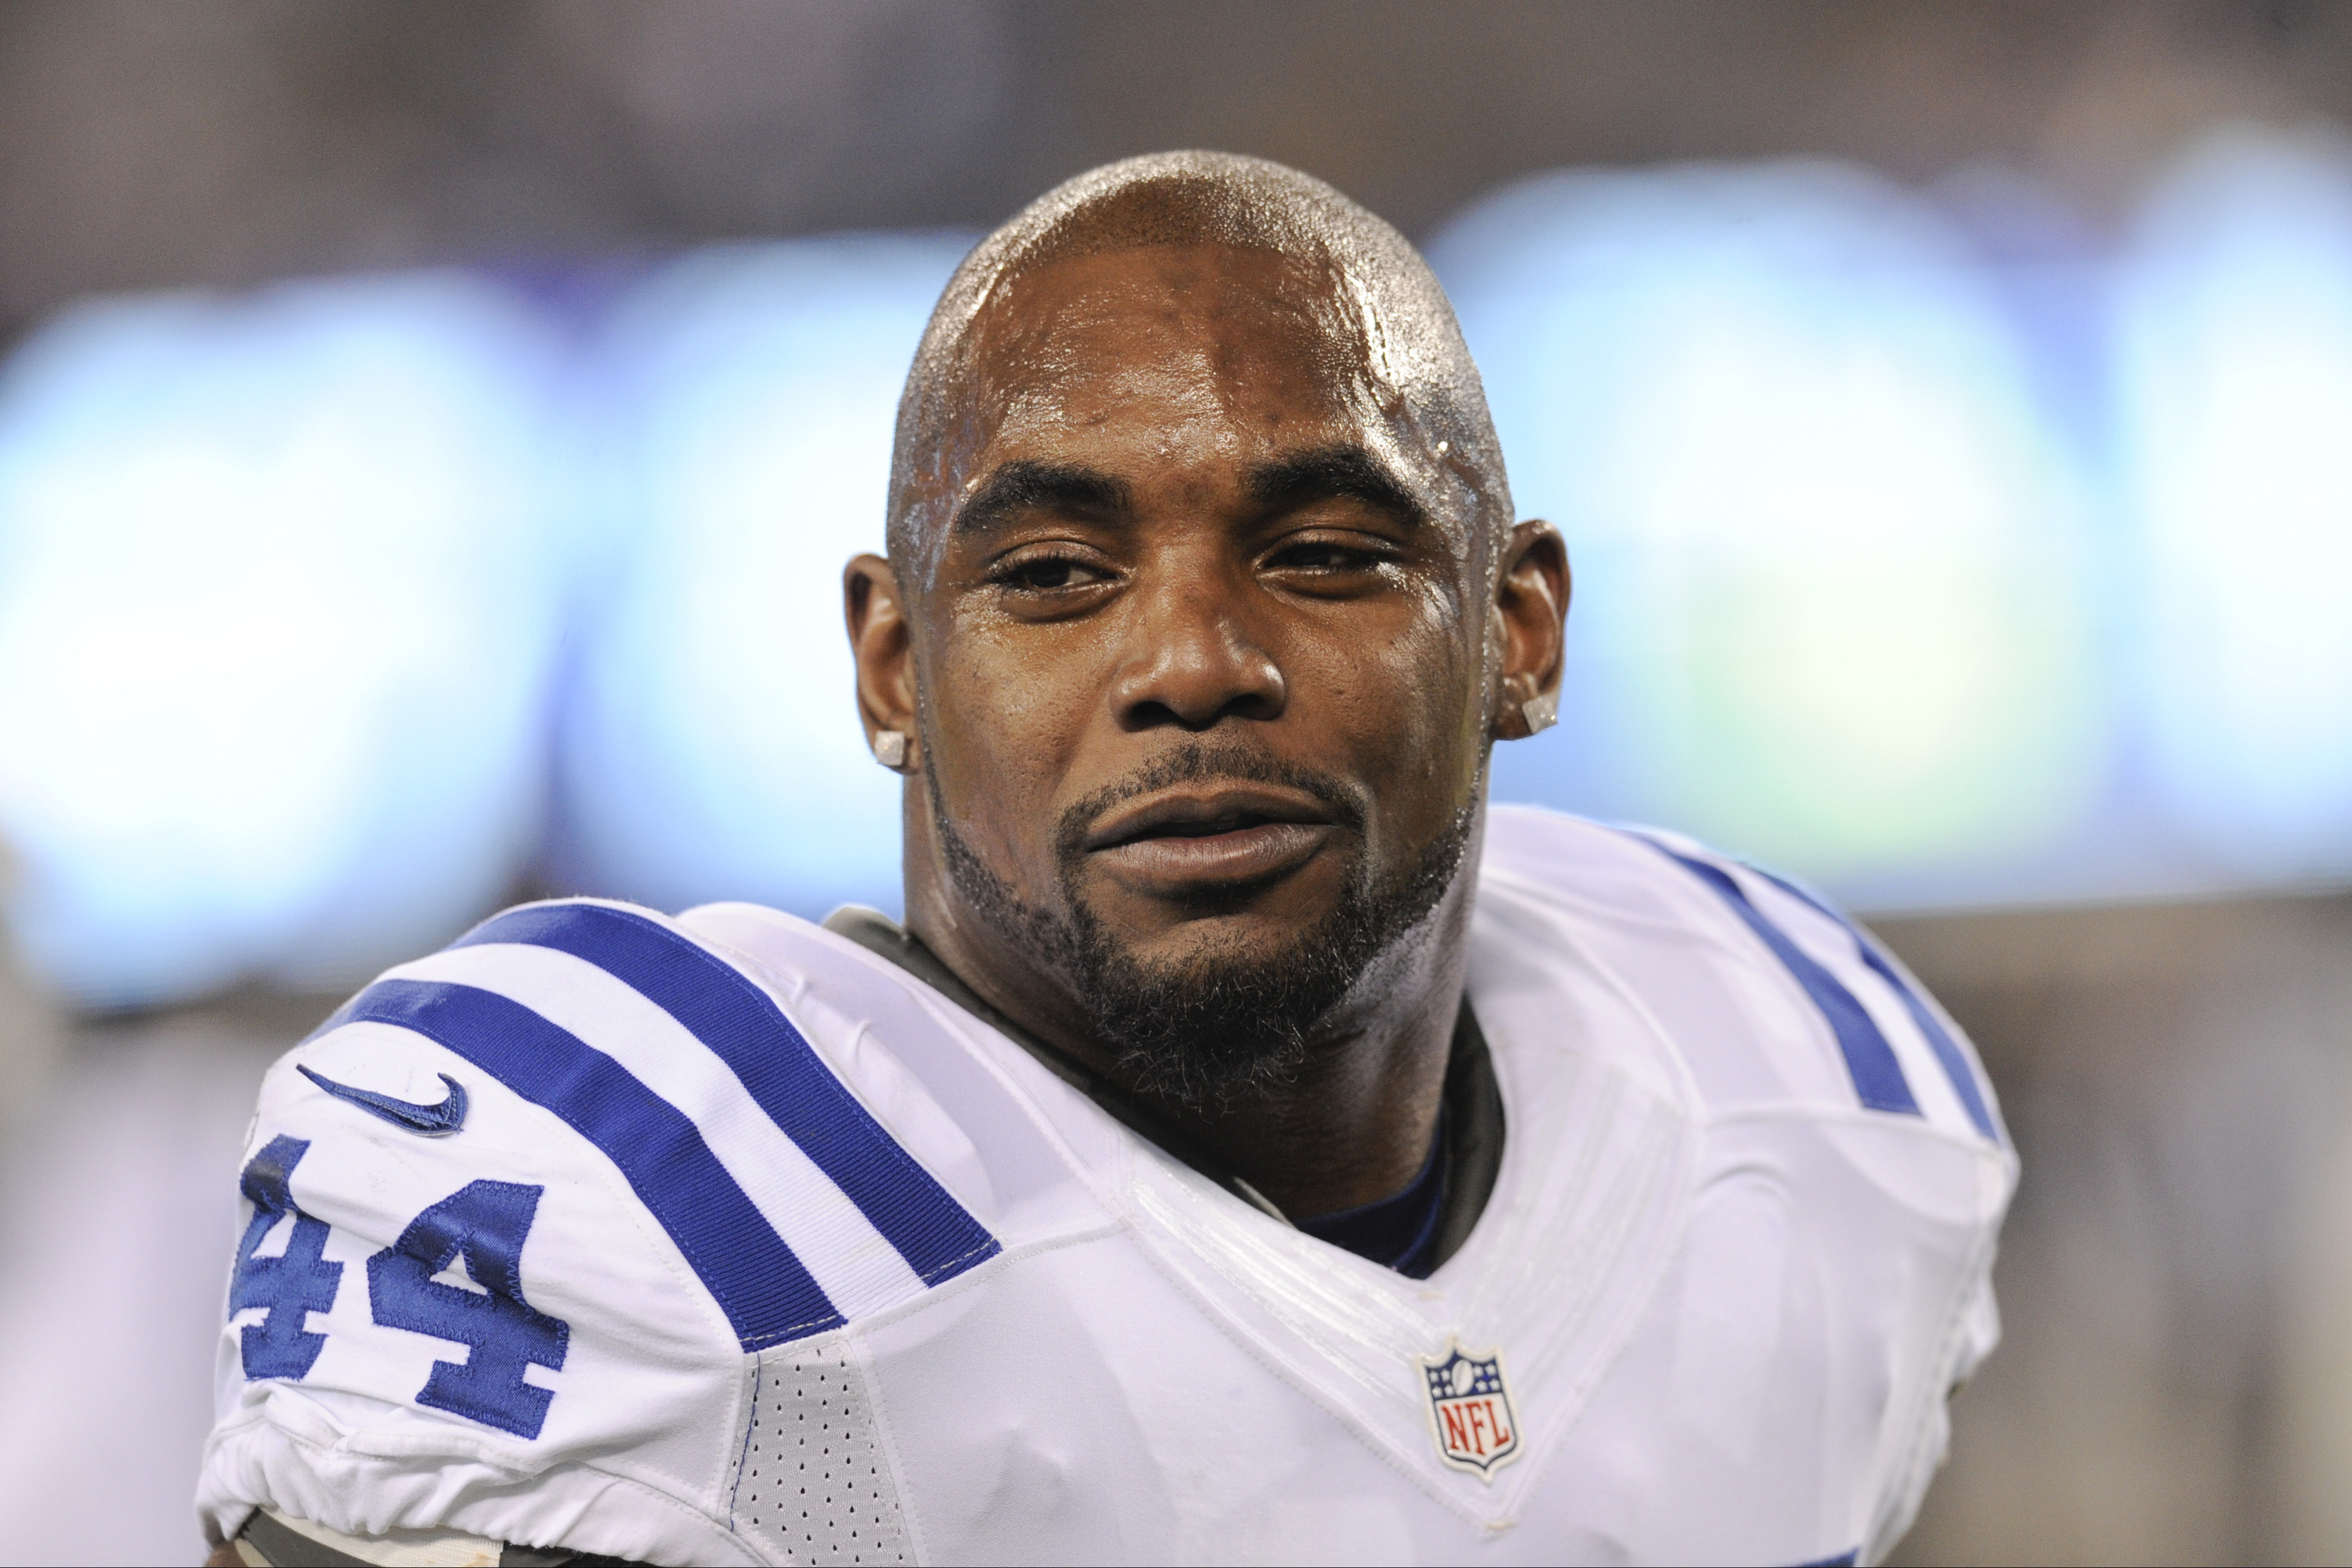 FILE - This Nov. 3, 2014, file photo shows Indianapolis Colts running back Ahmad Bradshaw (44) before an NFL football game against the New York Giants in East Rutherford, N.J. Bradshaw, a veteran NFL running back has pleaded no contest and paid a fine to